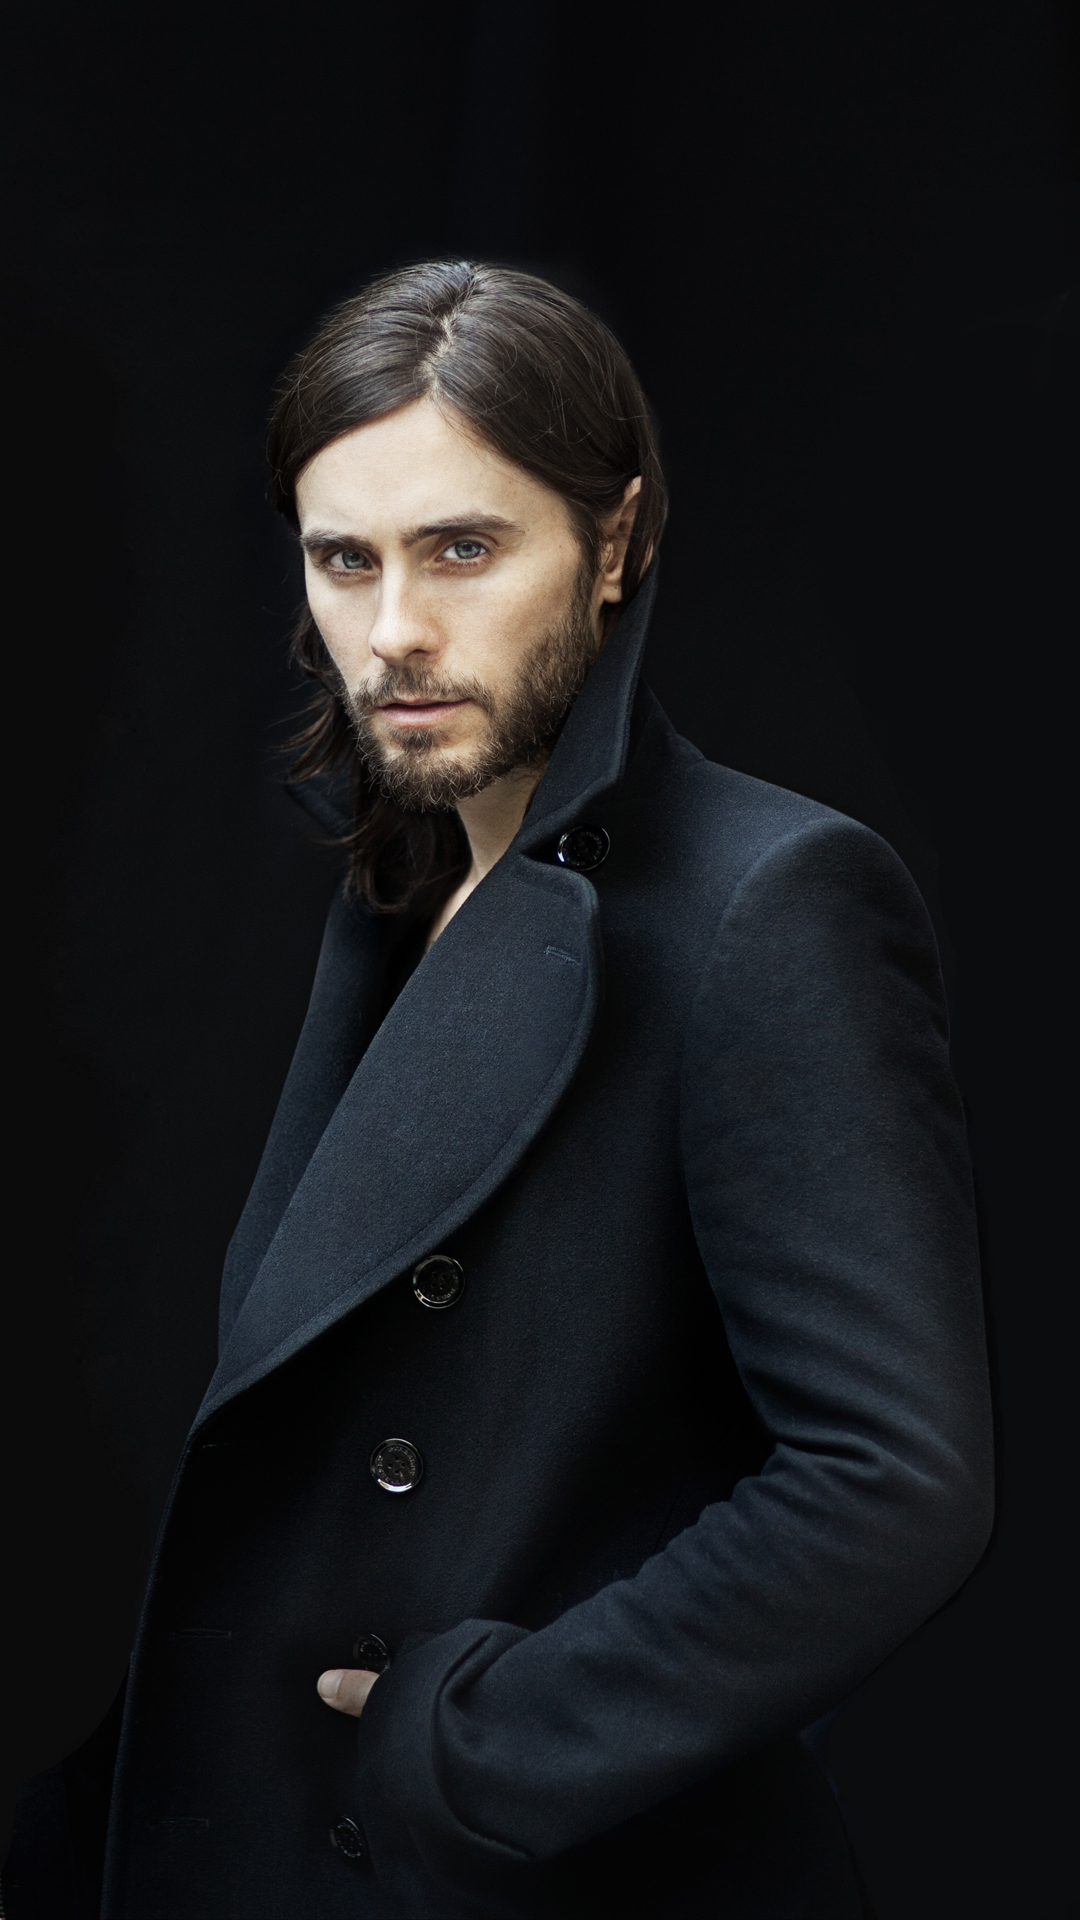 Jared leto images jared leto hd wallpaper and background photos - Handsome Jared Leto